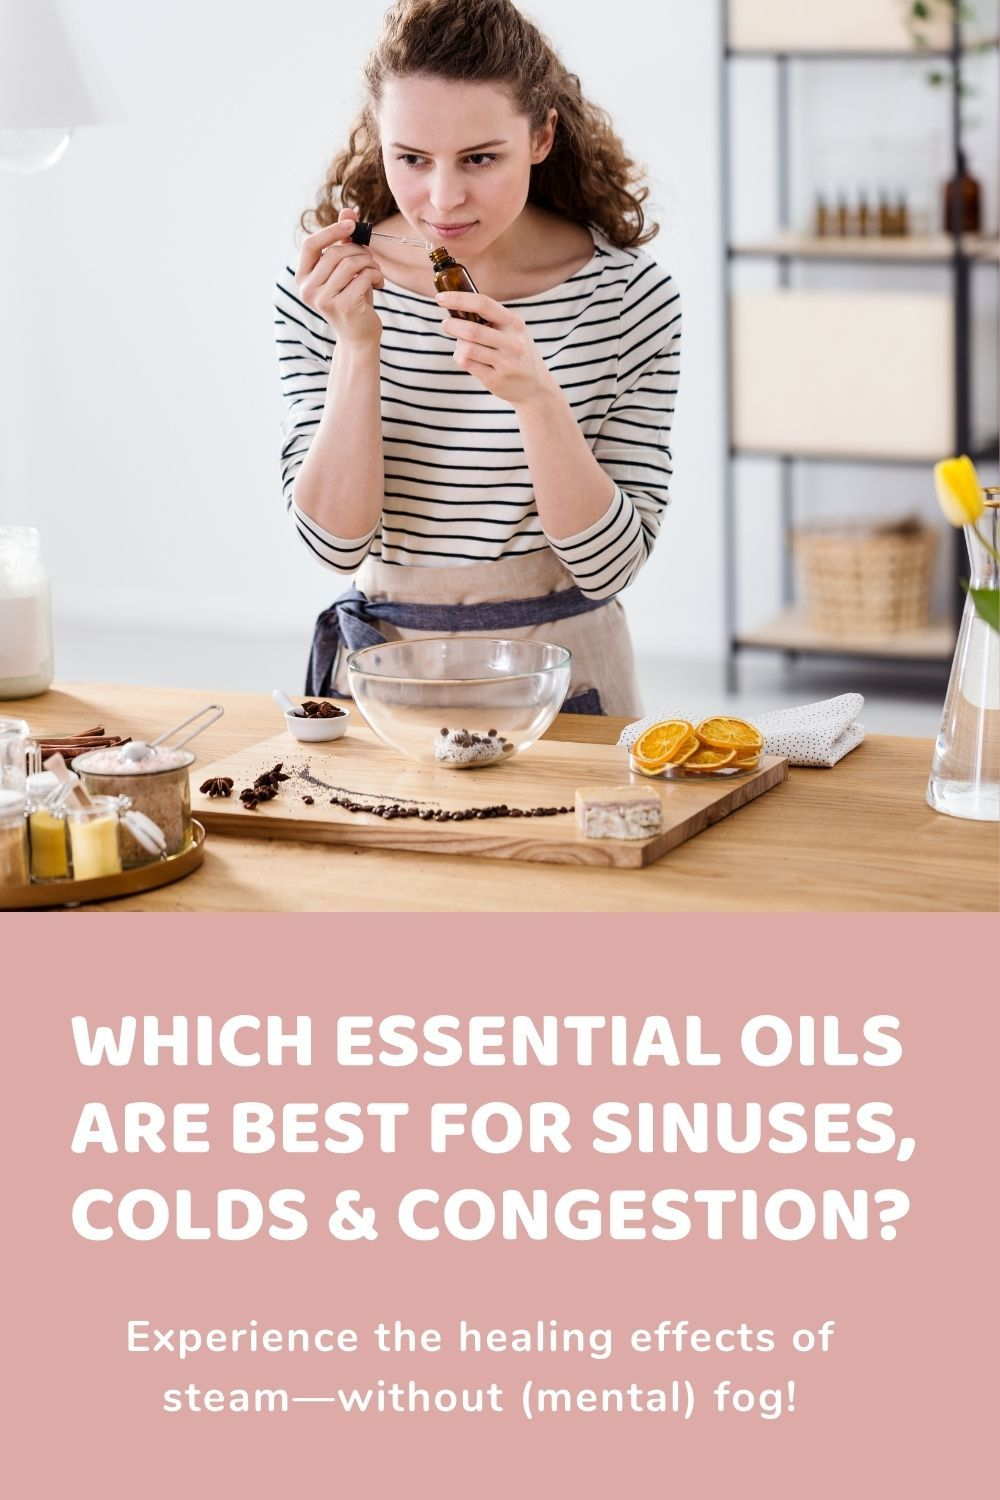 Which Essential Oils are Best for Sinuses, Colds, & Congestion?